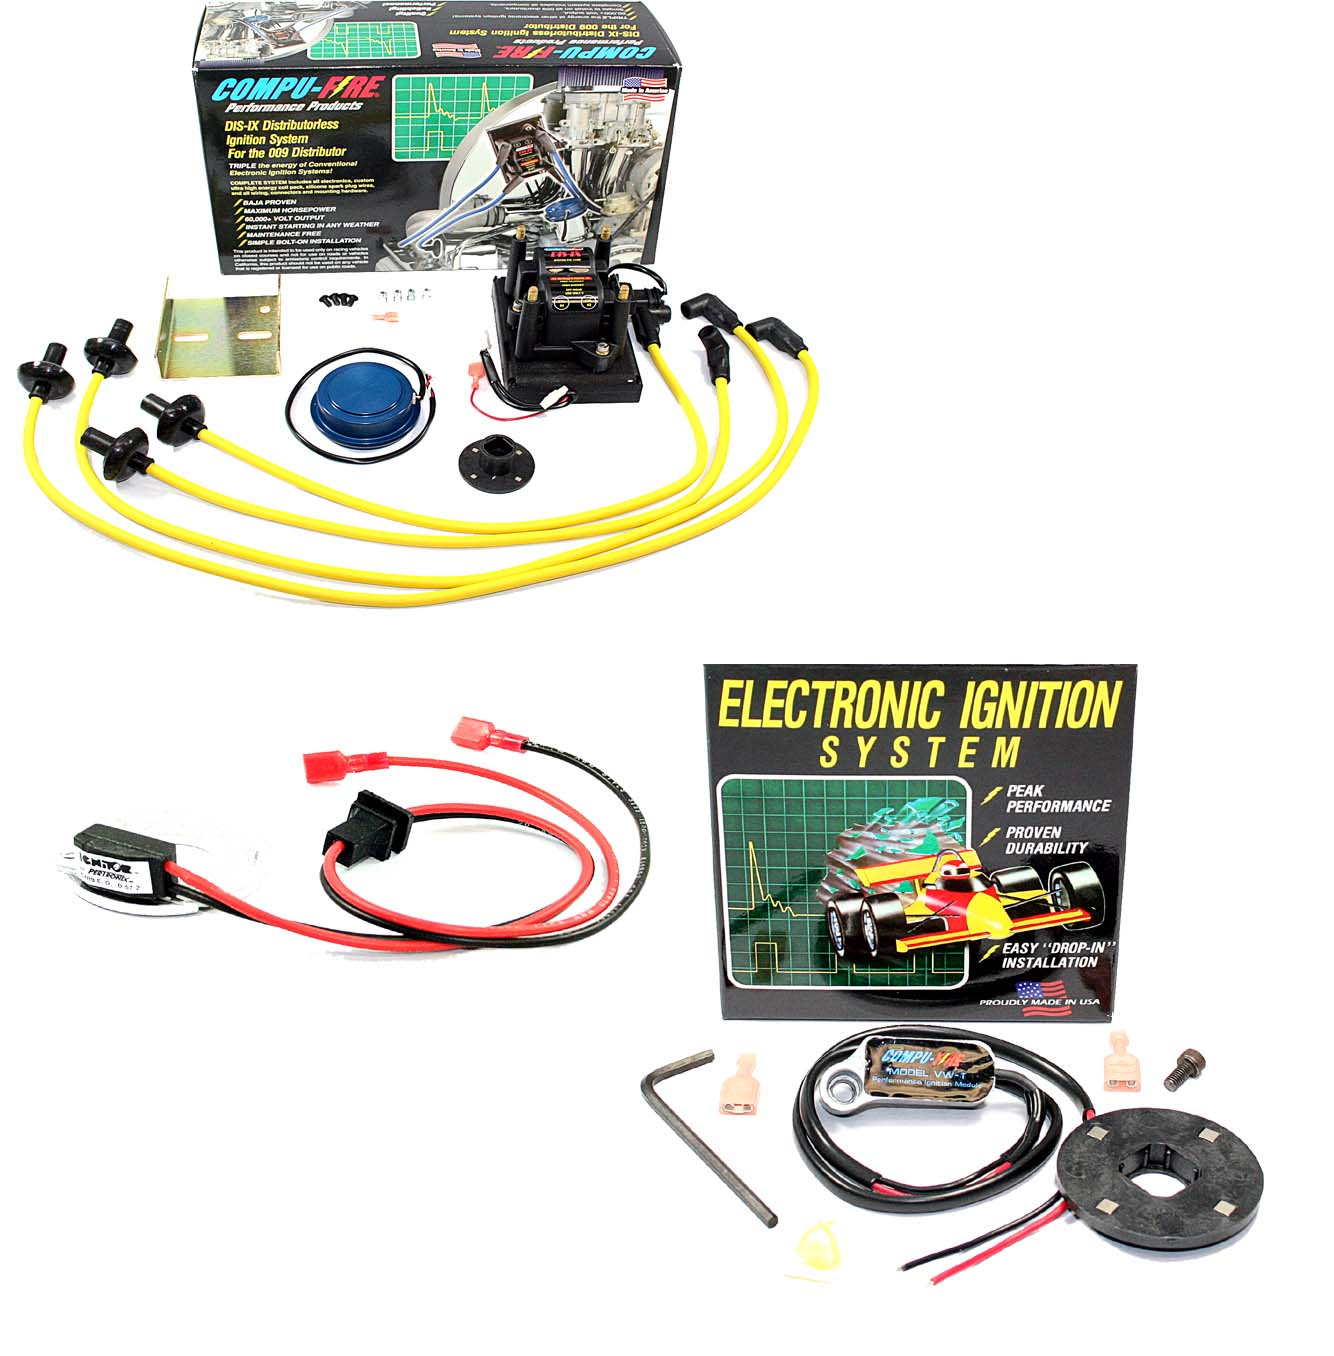 Electronic Ignition